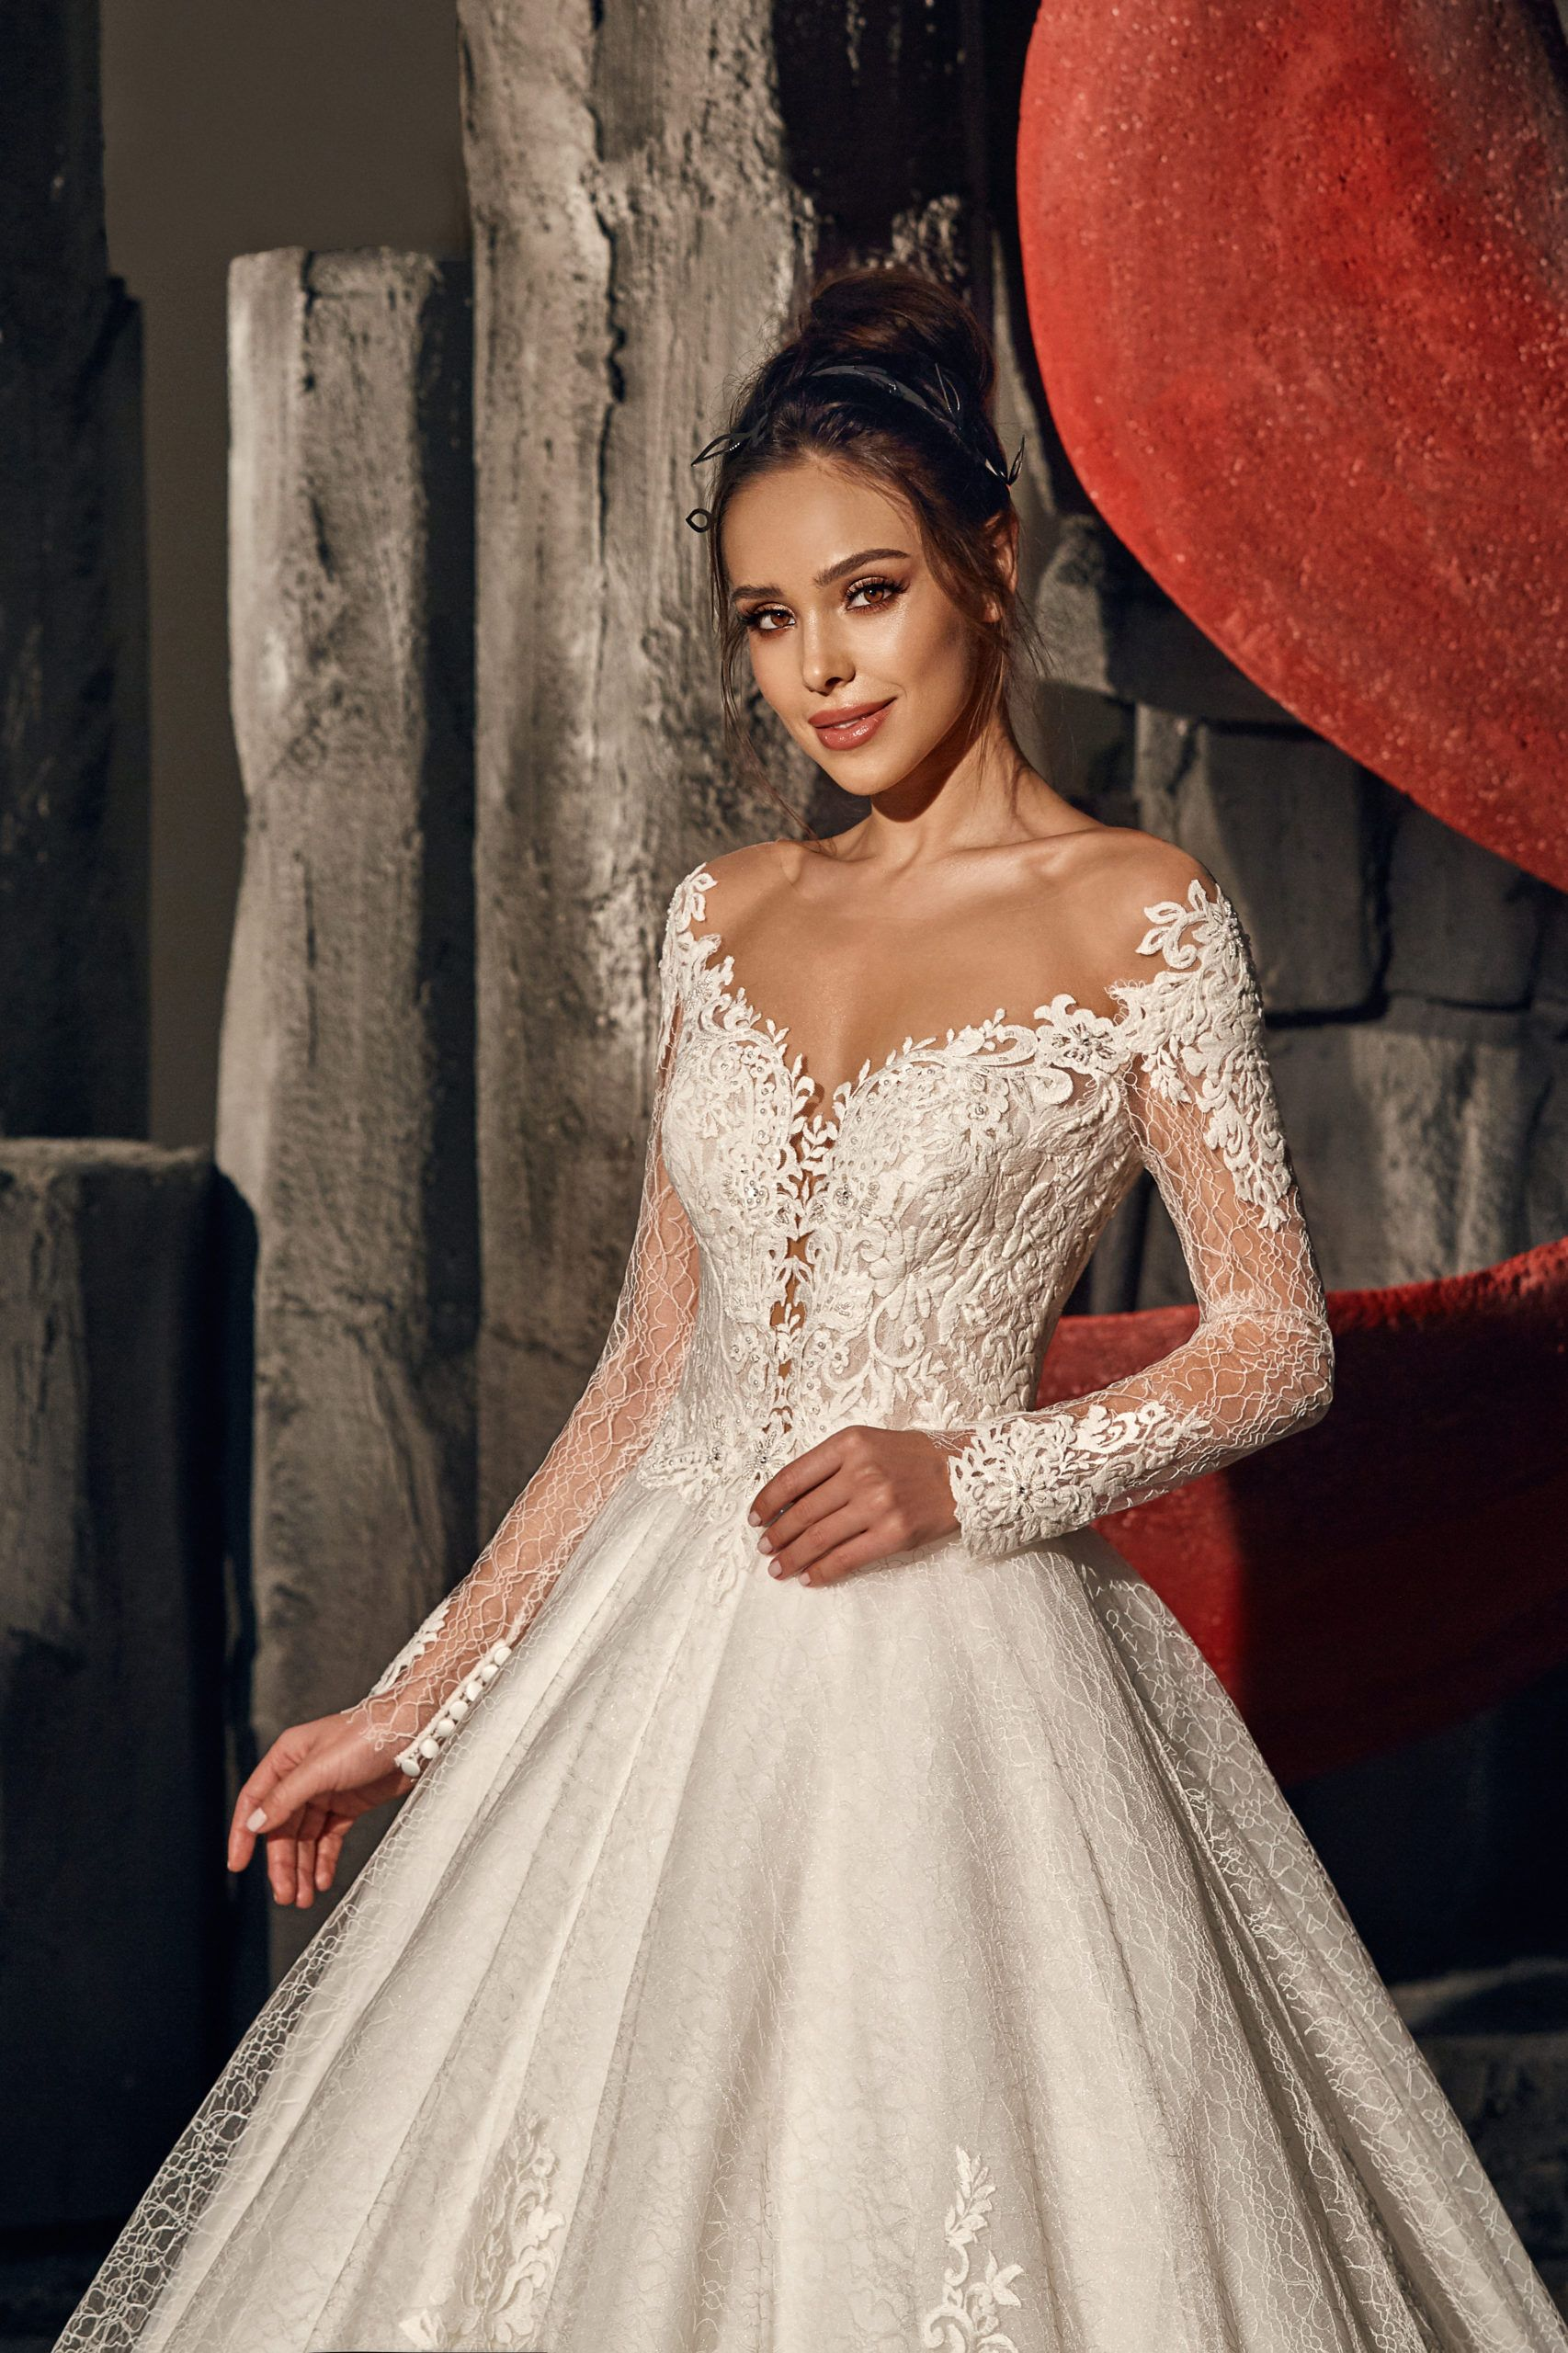 Lada Wedding Dress Black Pearl Collection Lace Sweetheart Wedding Dress Wedding Dress Necklines Wedding Guest Gowns [ 2560 x 1706 Pixel ]